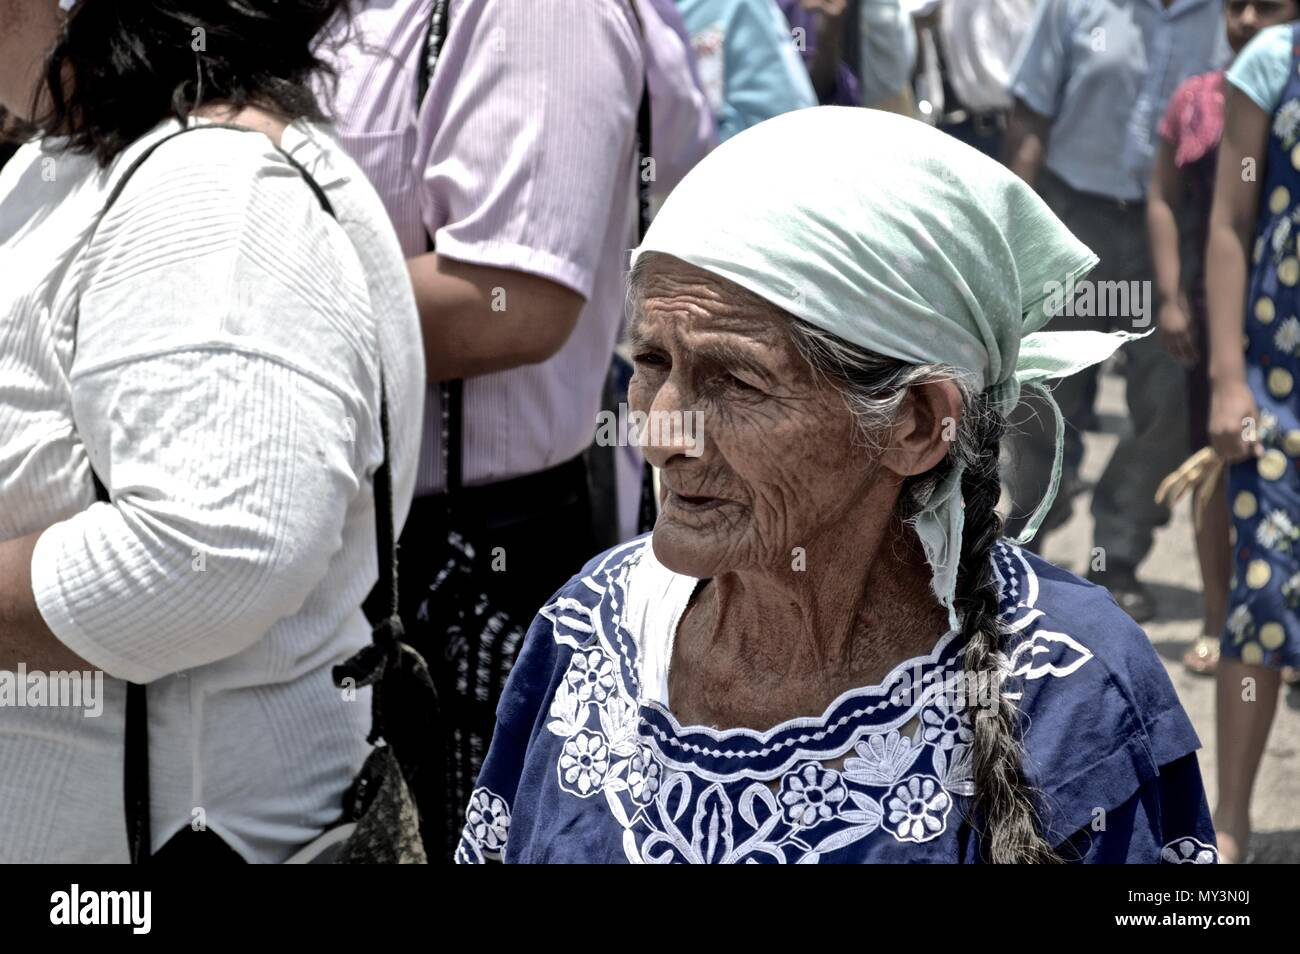 Woman at a Holy Week's Guatemalan Procession - Stock Image